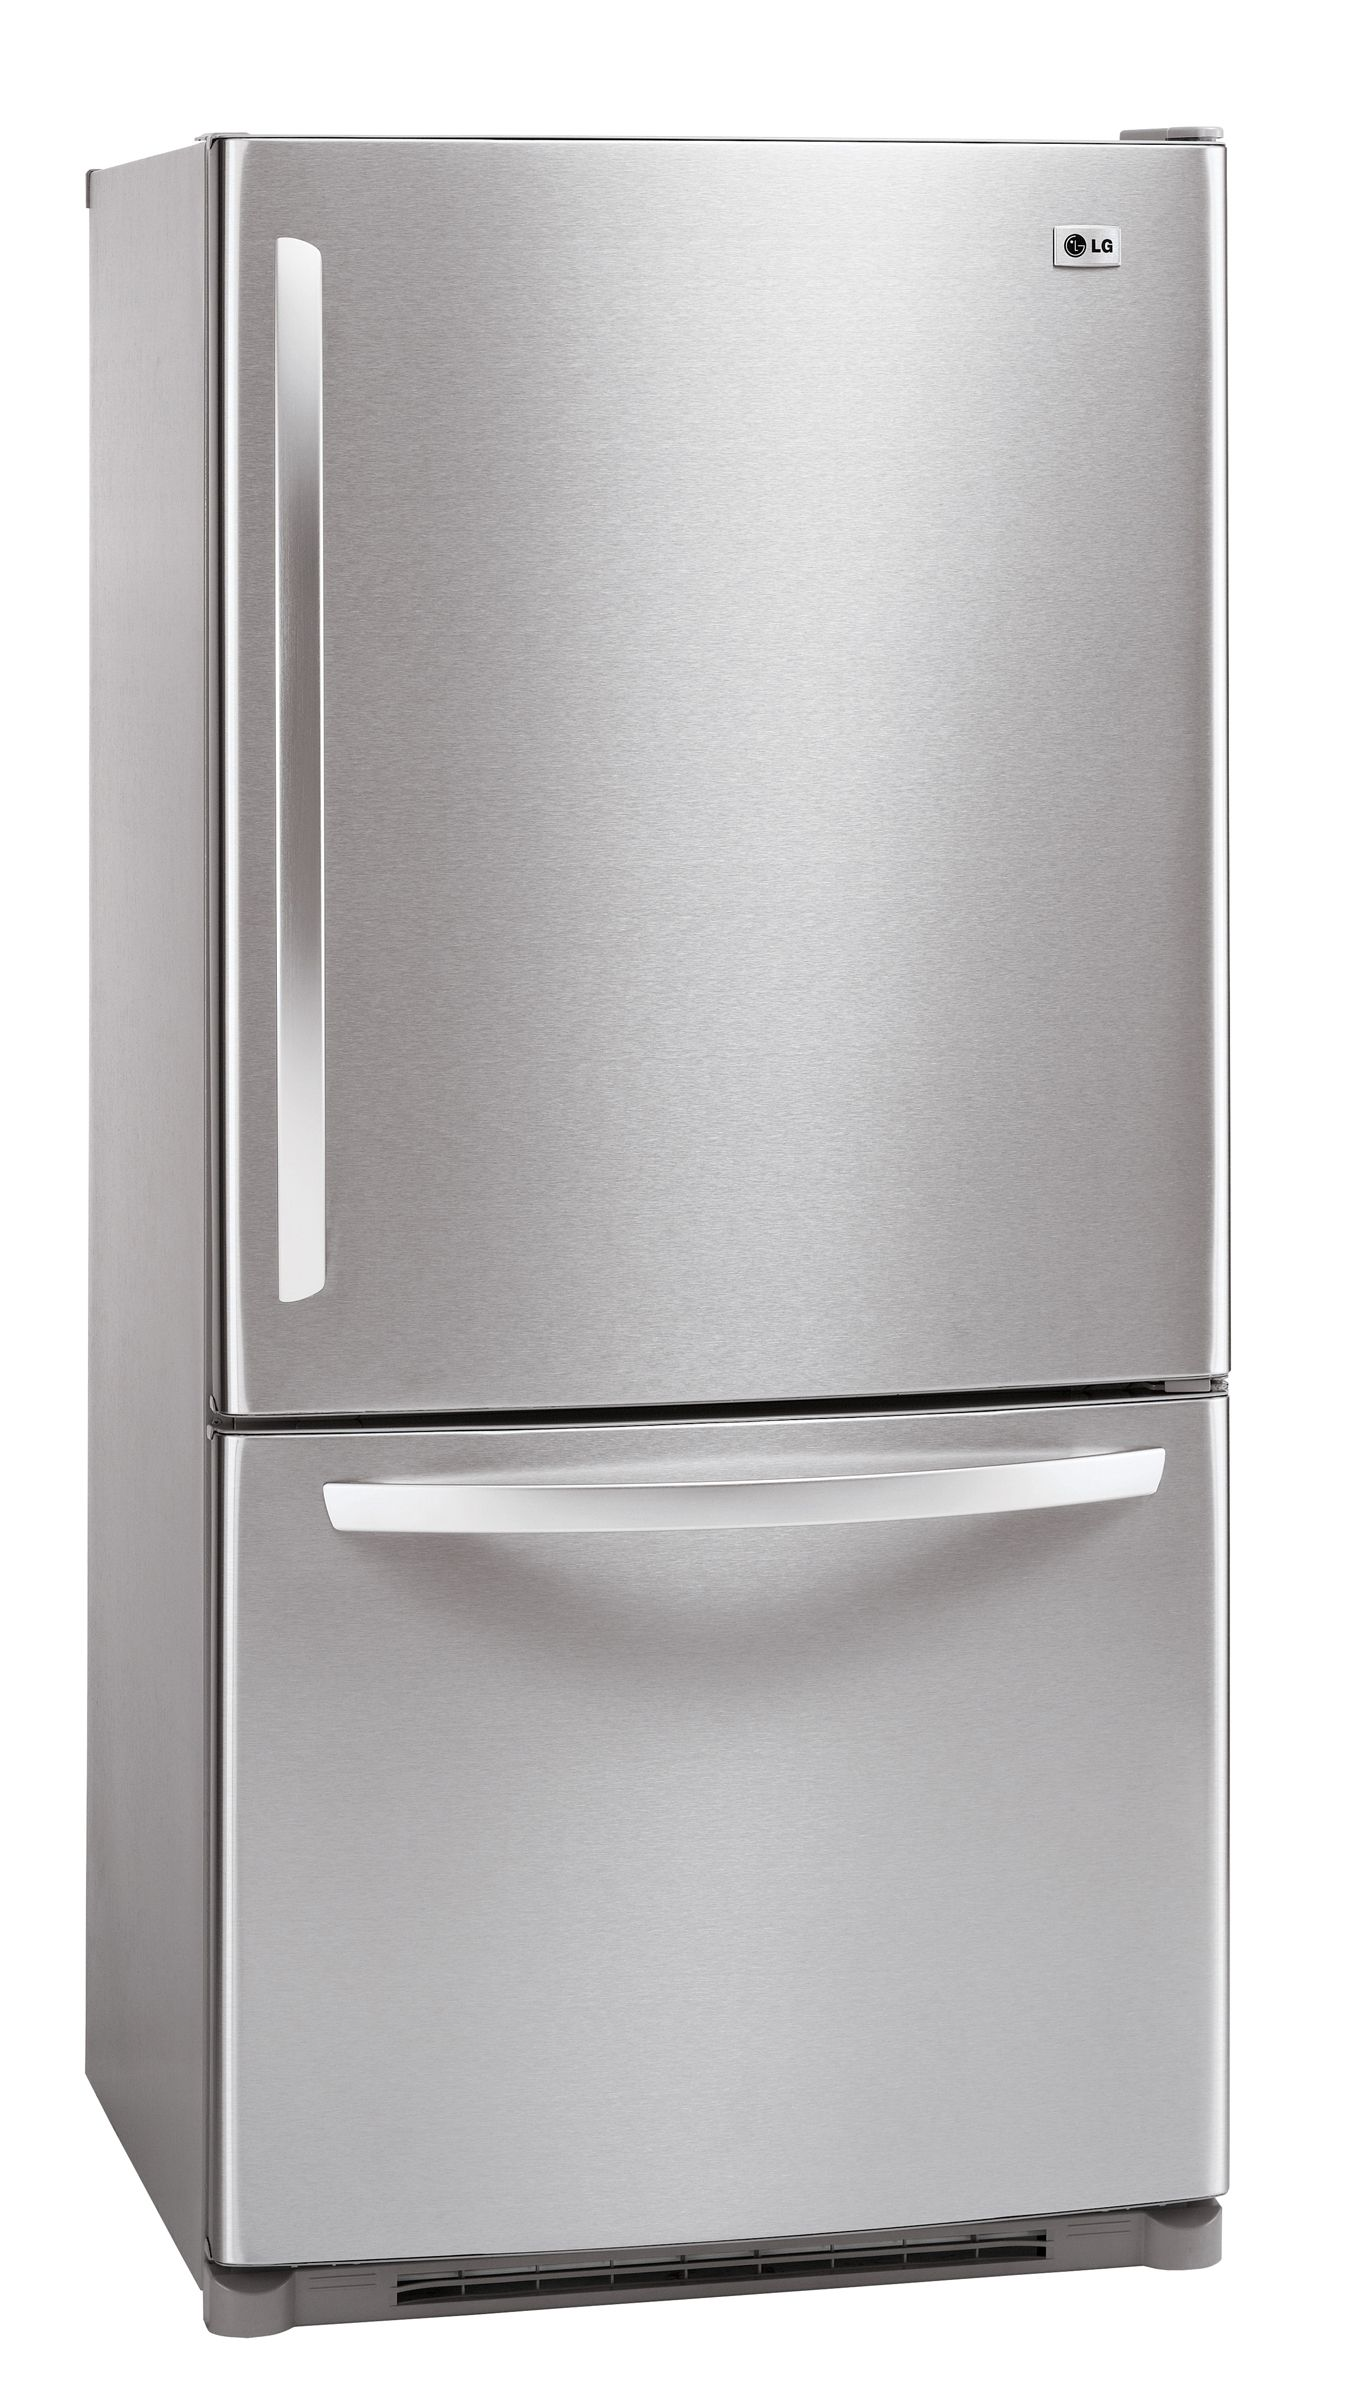 LG 22.4 cu. ft. Bottom Freezer Refrigerator